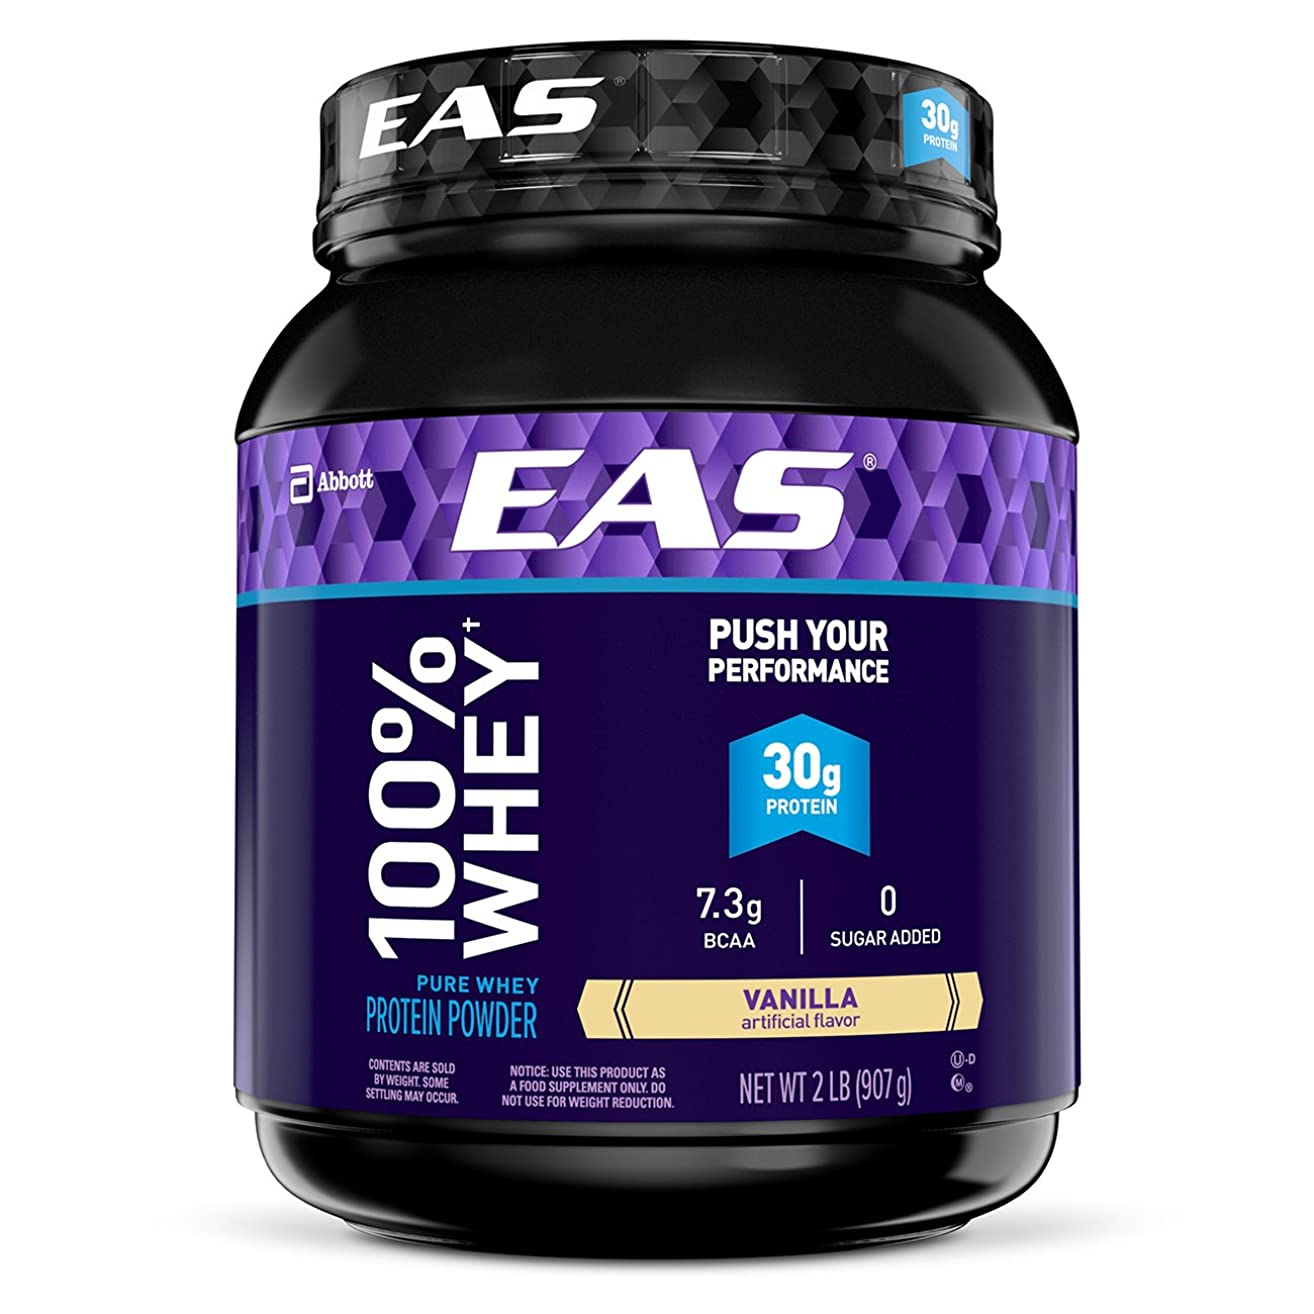 EAS 100% Pure Whey Protein Powder, Vanilla, 2 lb (Packaging May Vary)